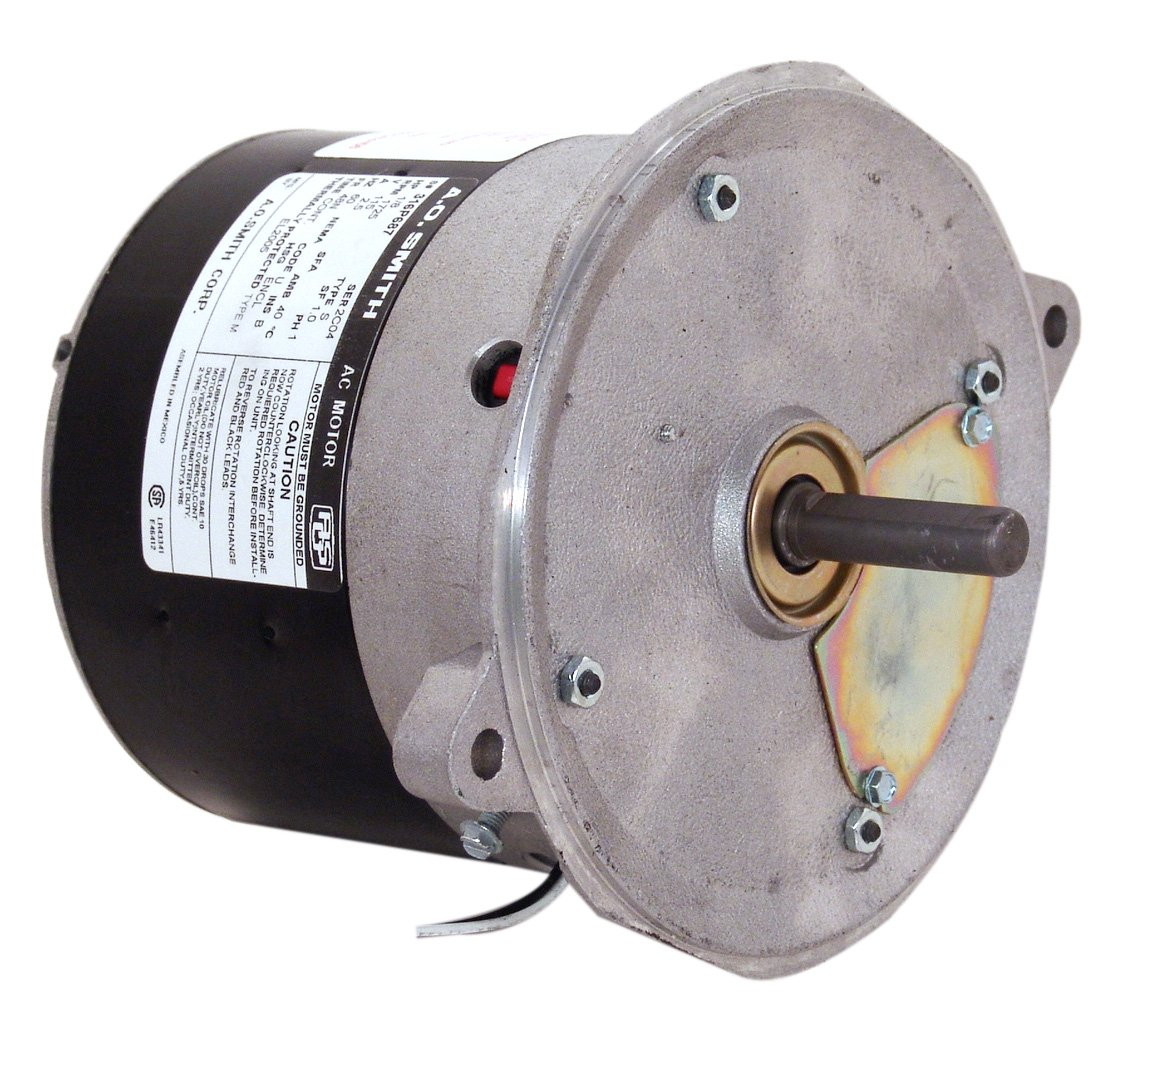 A.O. Smith XEL2014 1/6 HP, 1725 RPM, 115 Volts, 48N Frame, Totally Enclosed, Sleeve Bearing, Reversible Rotation Oil Burner Motor